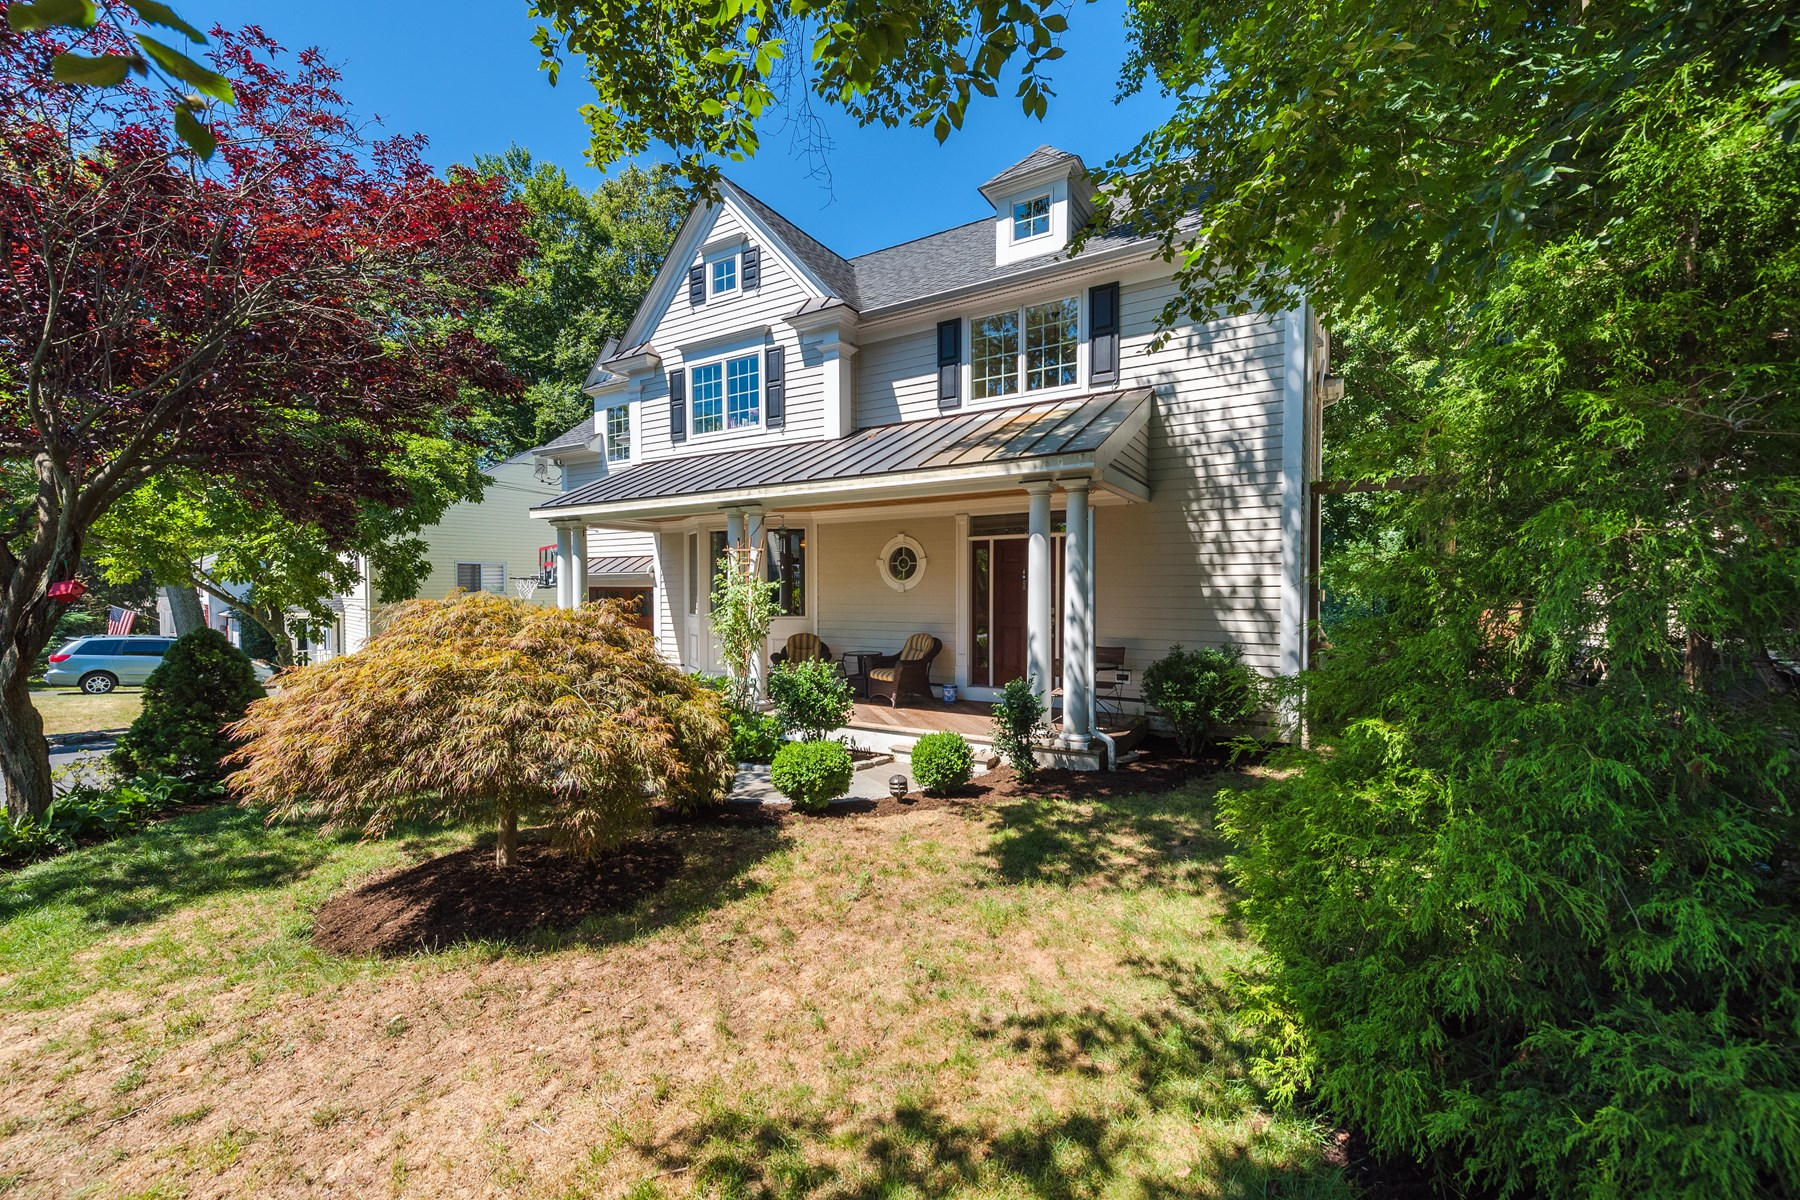 Single Family Home for Sale at Riverside Colonial with Pond Views 67 Mary Lane Riverside, Connecticut, 06878 United States